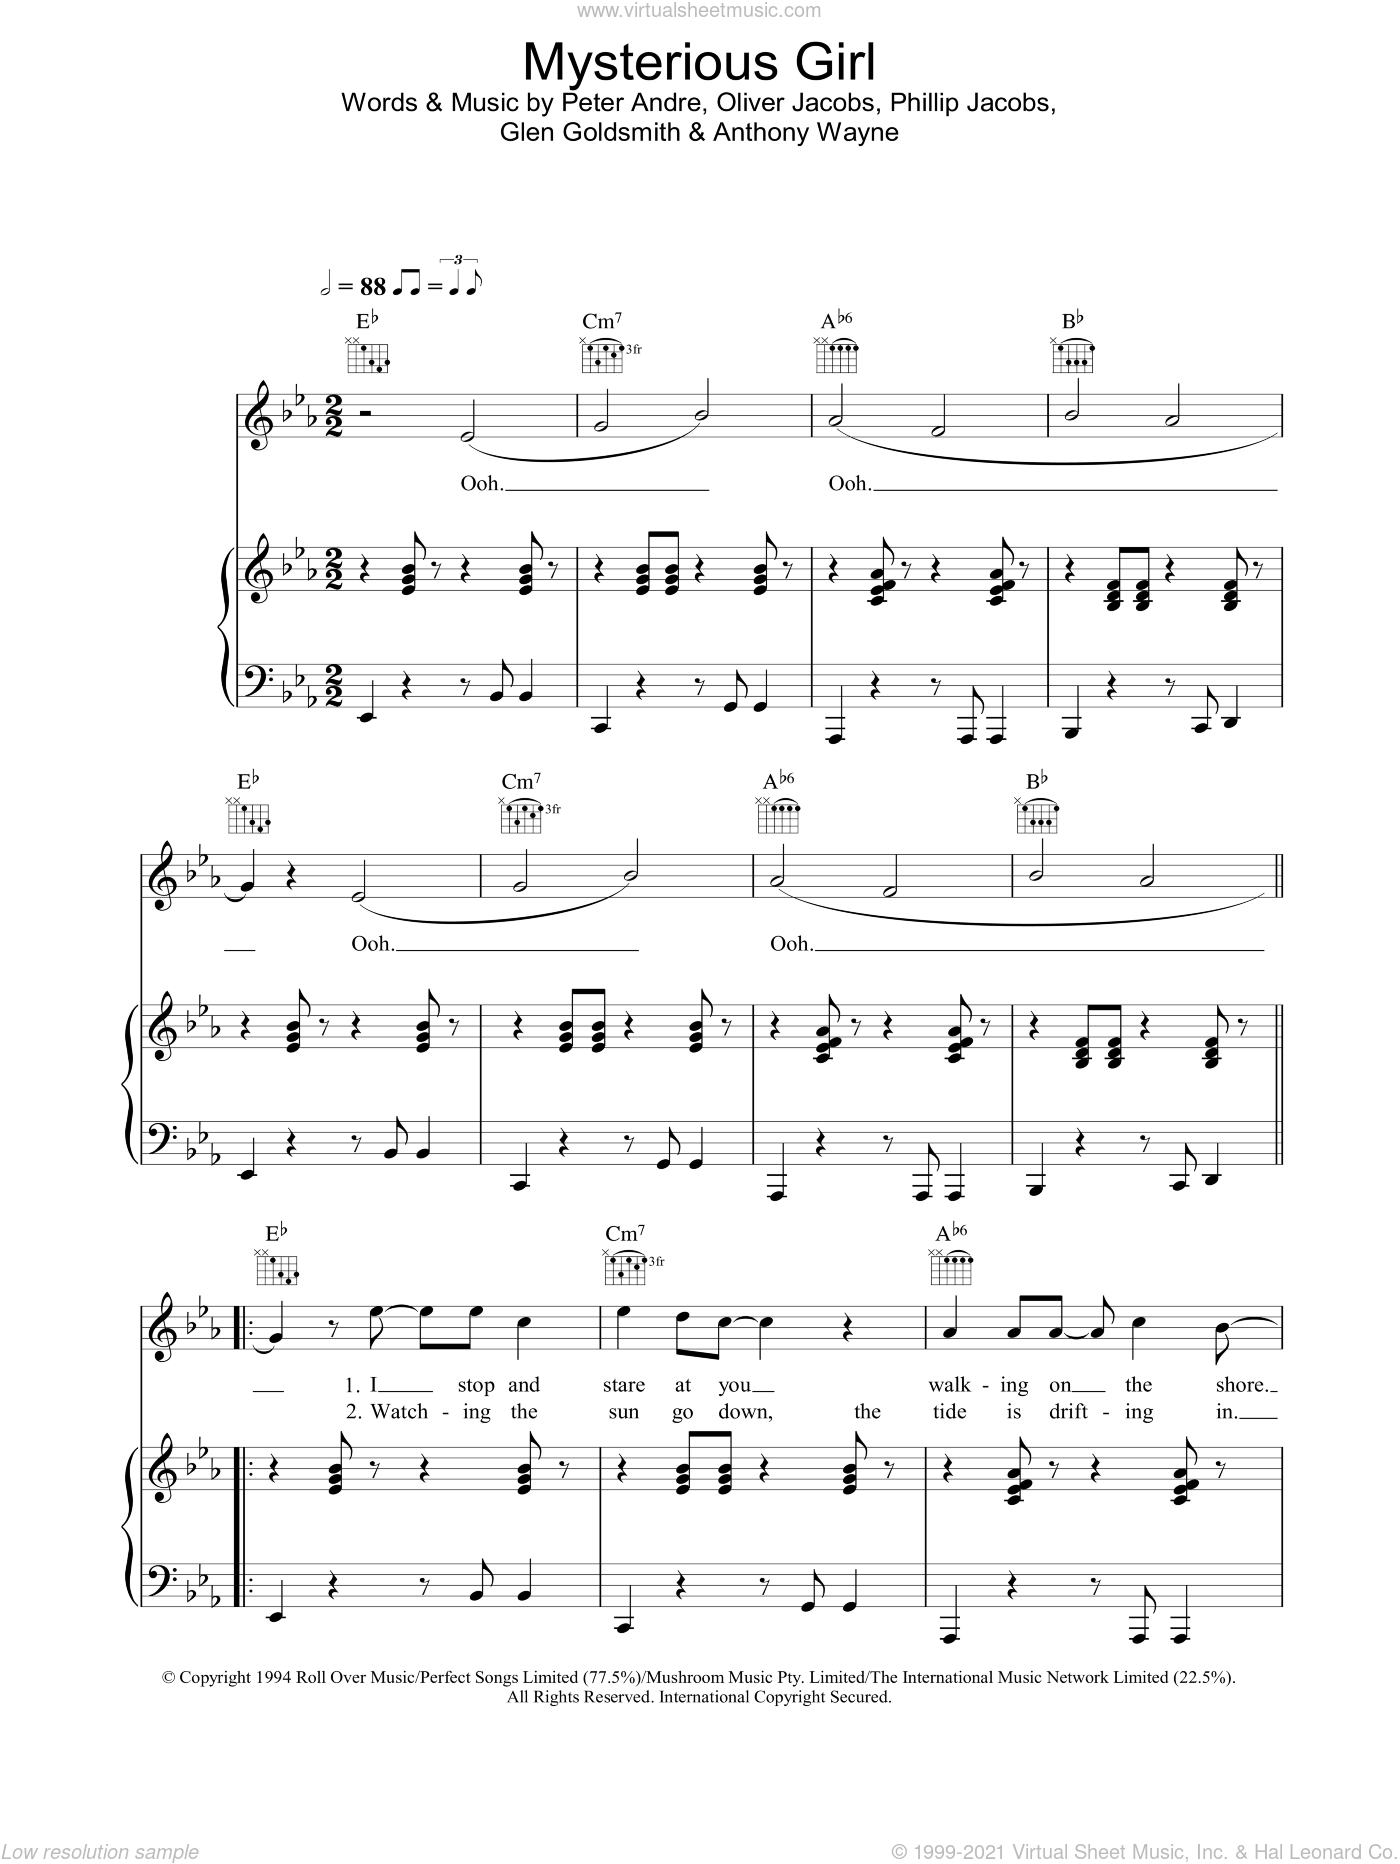 Mysterious Girl sheet music for voice, piano or guitar by Peter Andre